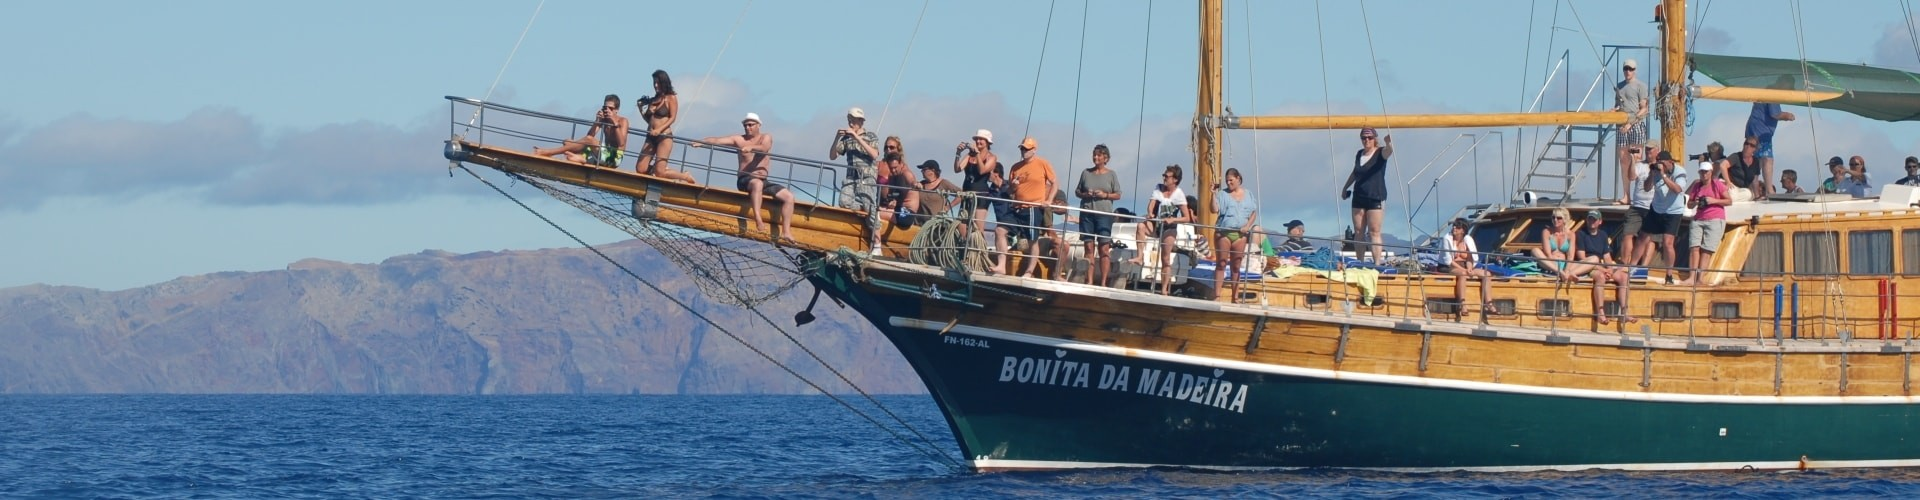 Boat Tours in Madeira Island